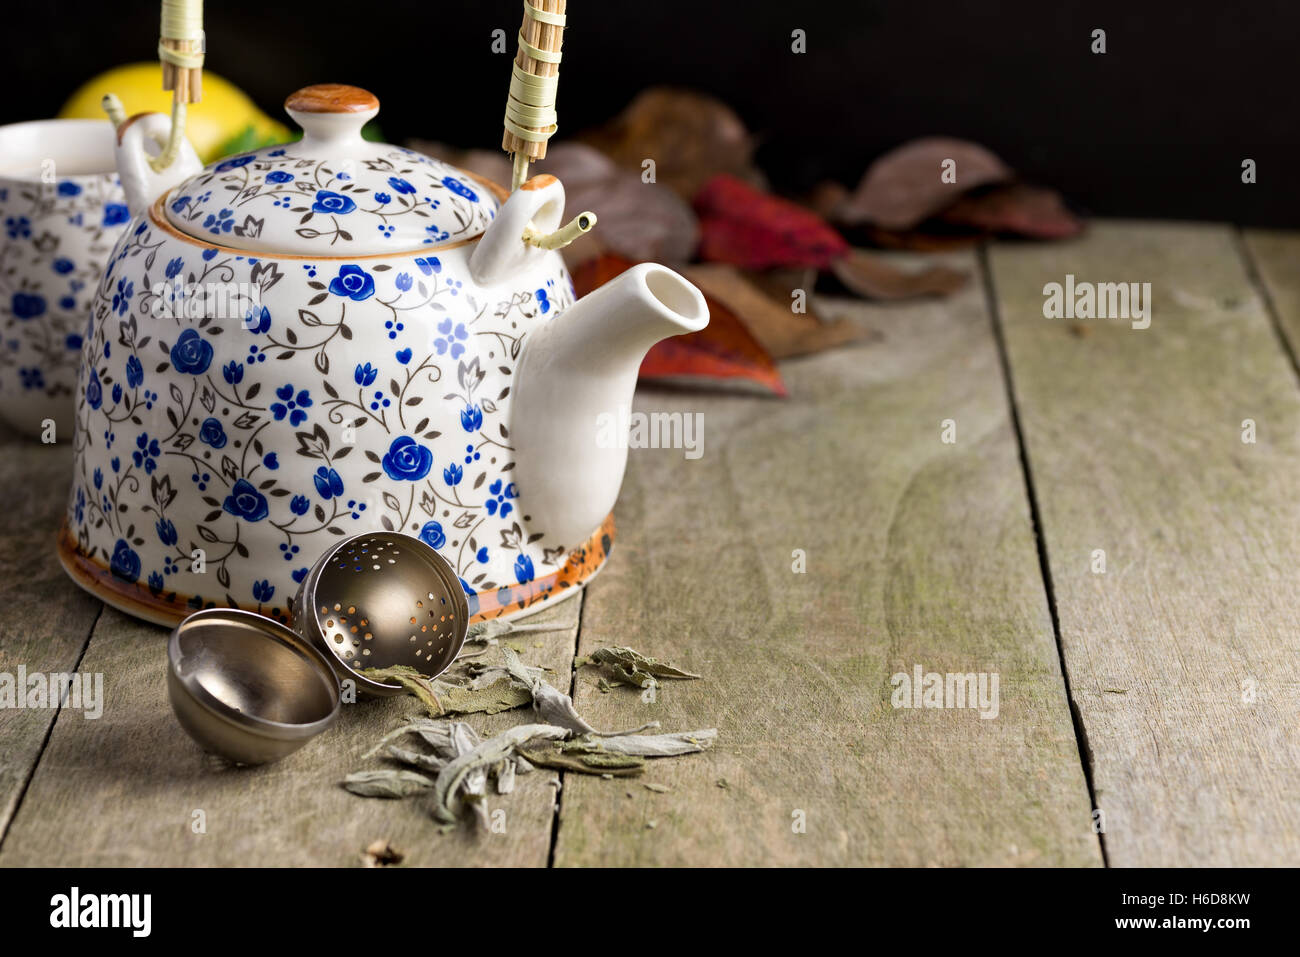 Autumn cup of tea on a rustic wooden table. - Stock Image